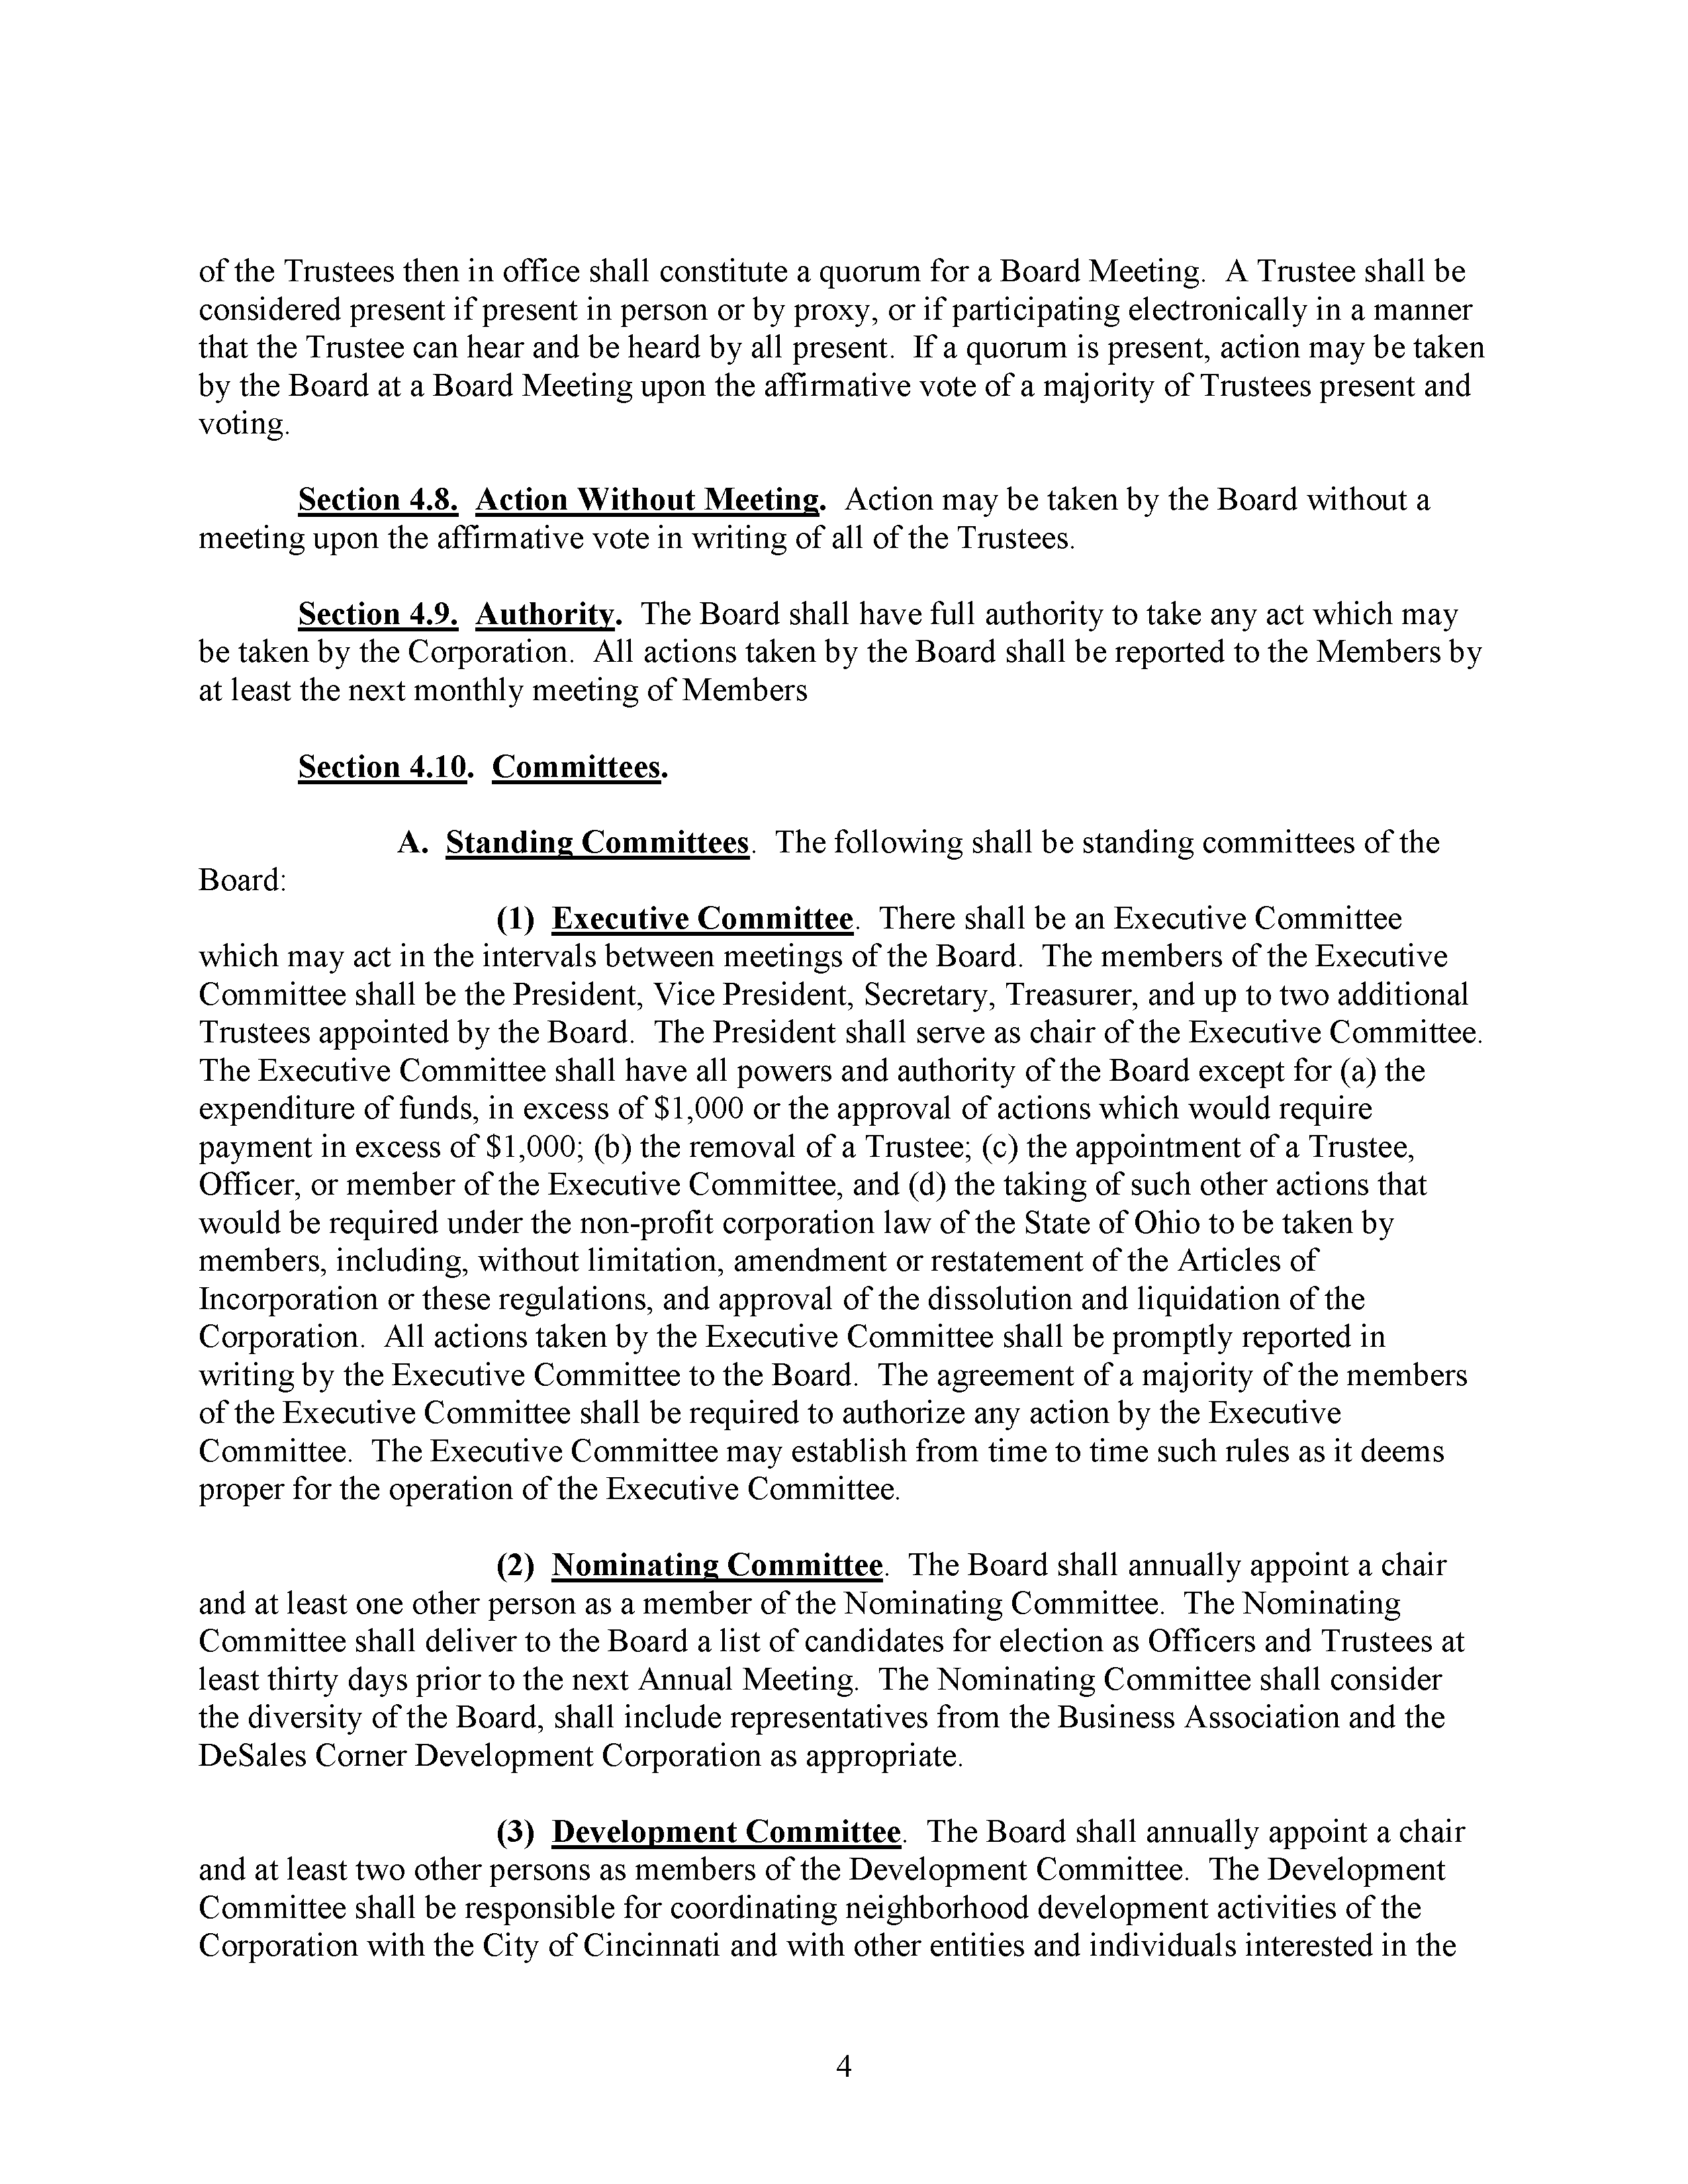 Code of Regulations, page 4